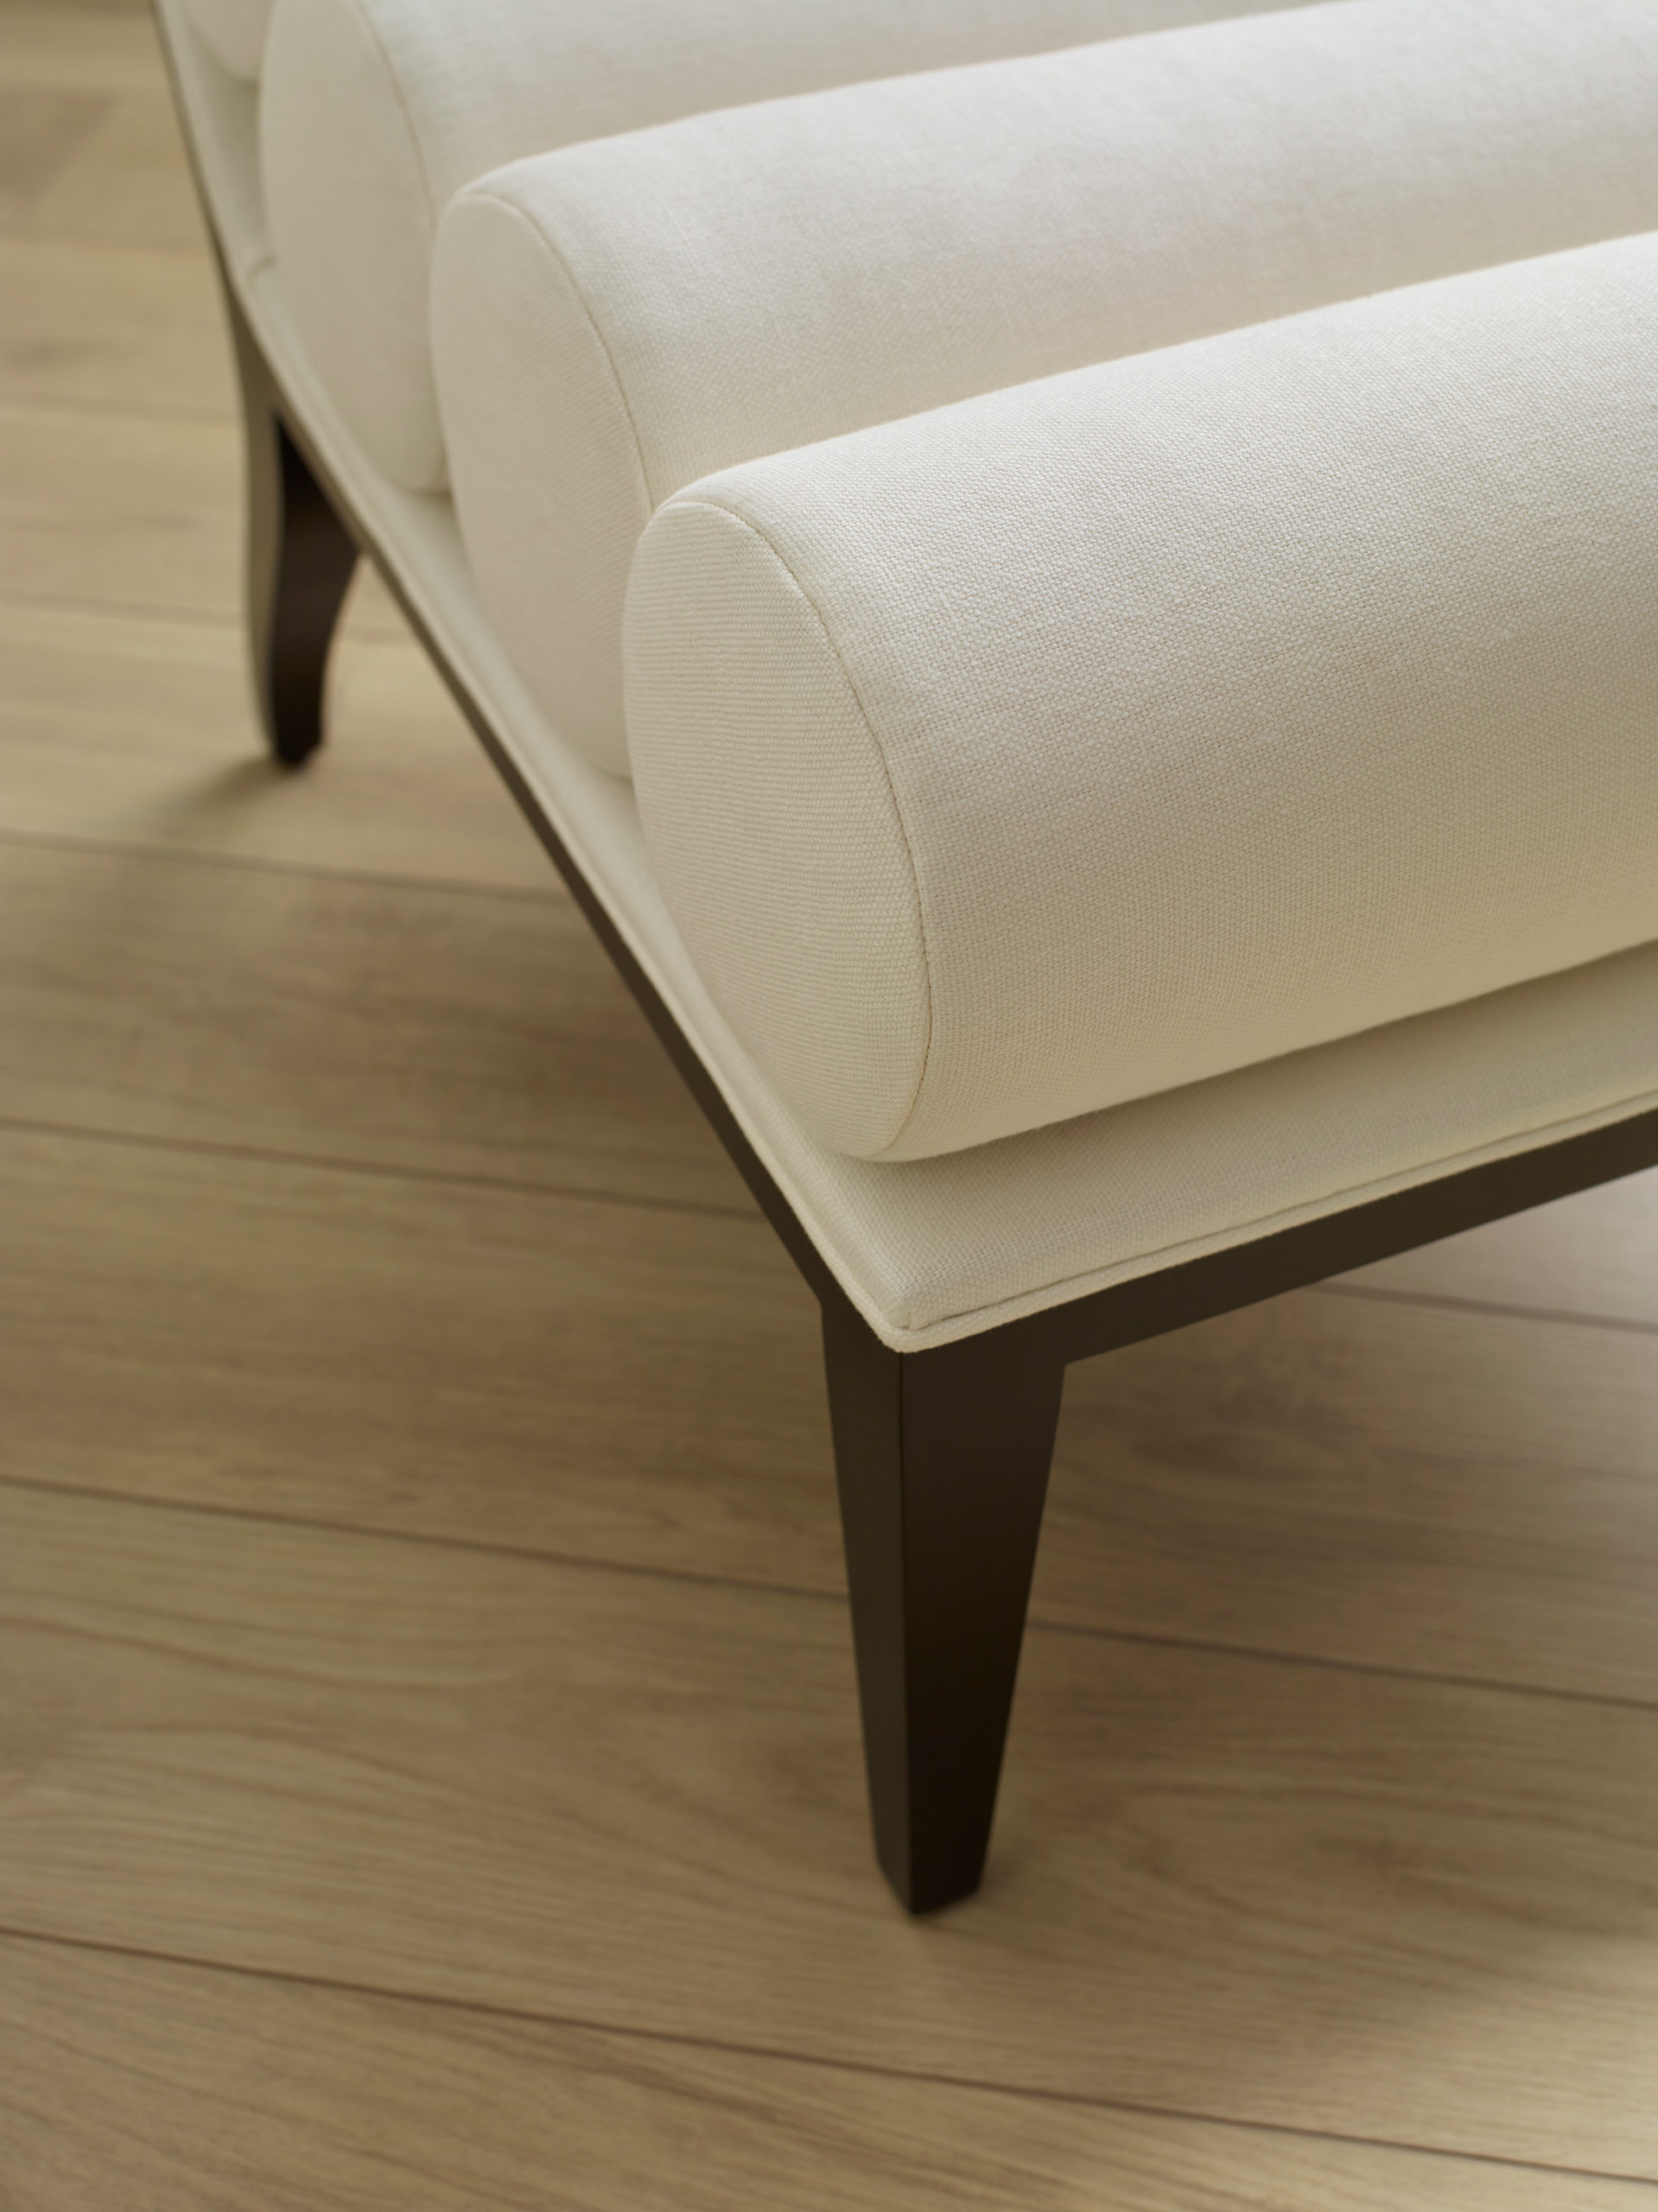 Baker_products_WNWN_arlo_lounge_chair_BAU3308C_Detail_01-scaled-1